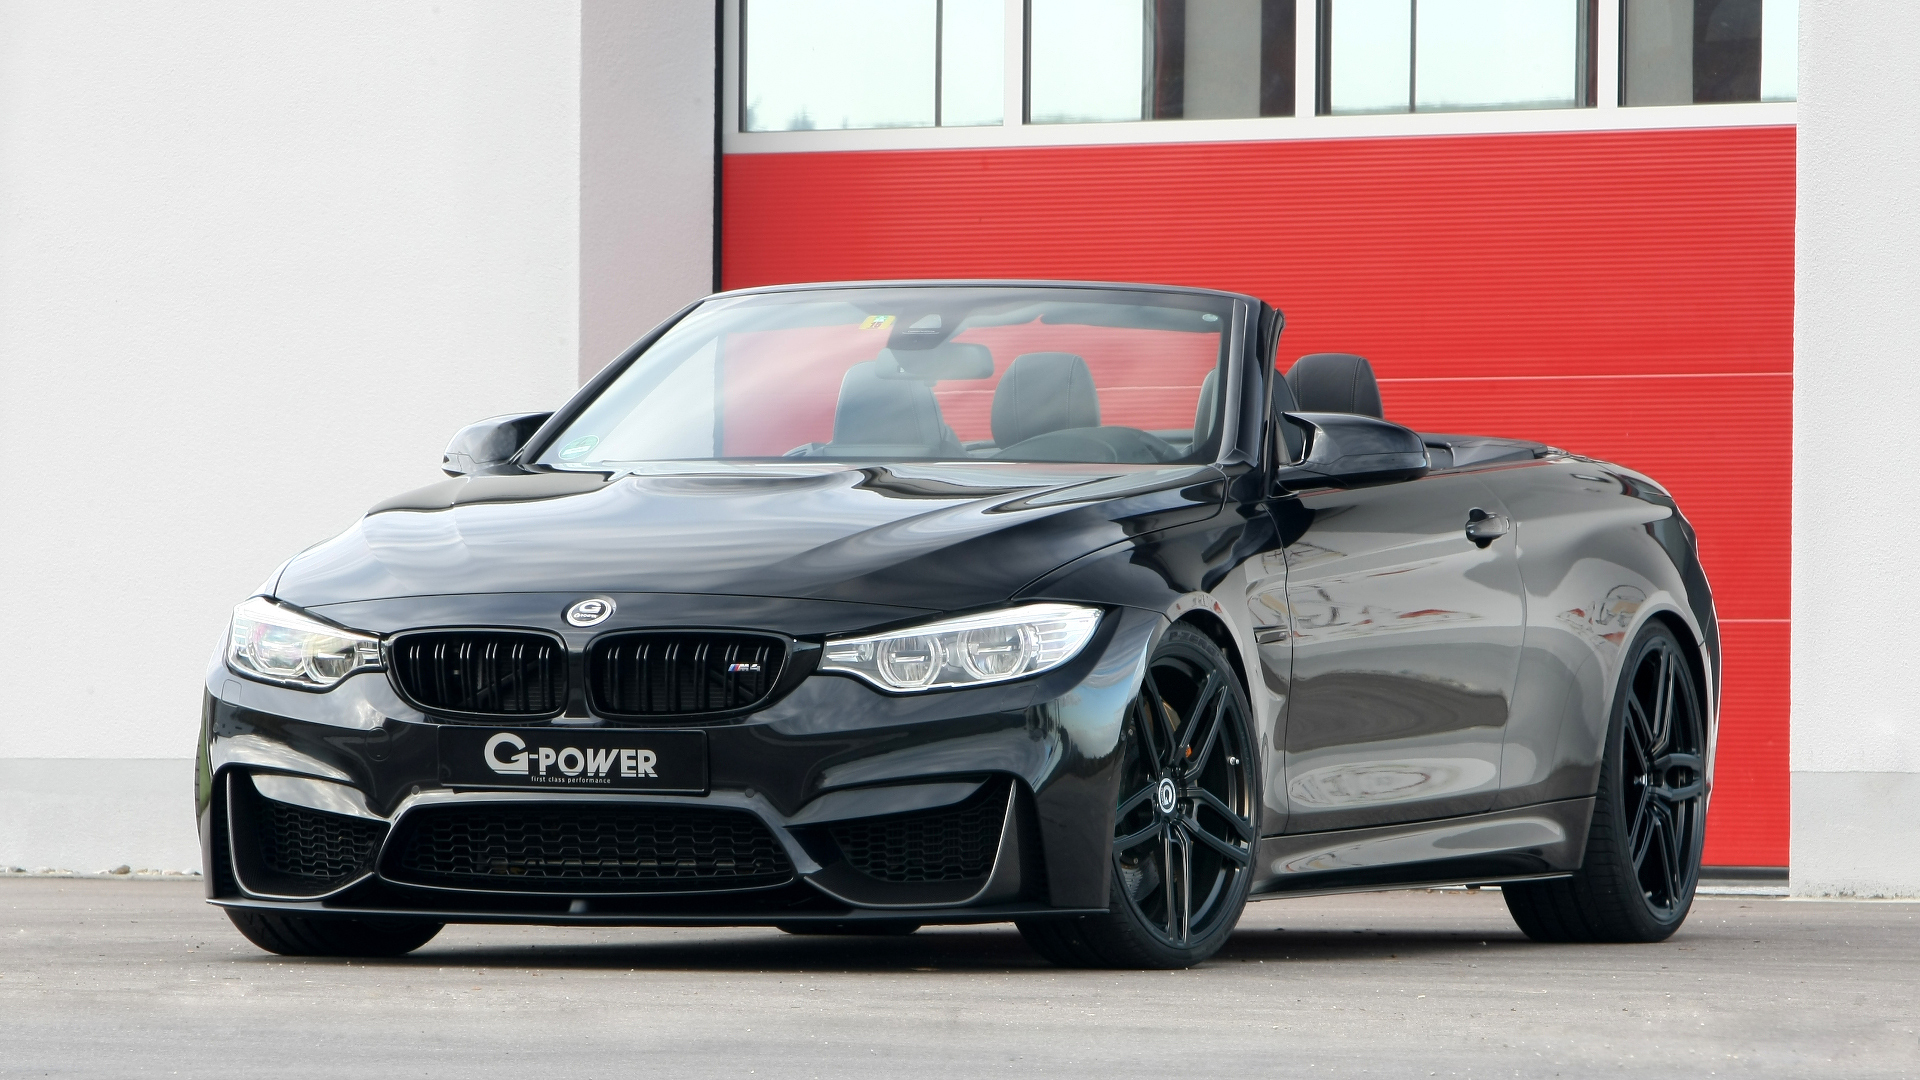 bmw-m4-convertible-tuning-g-power-12